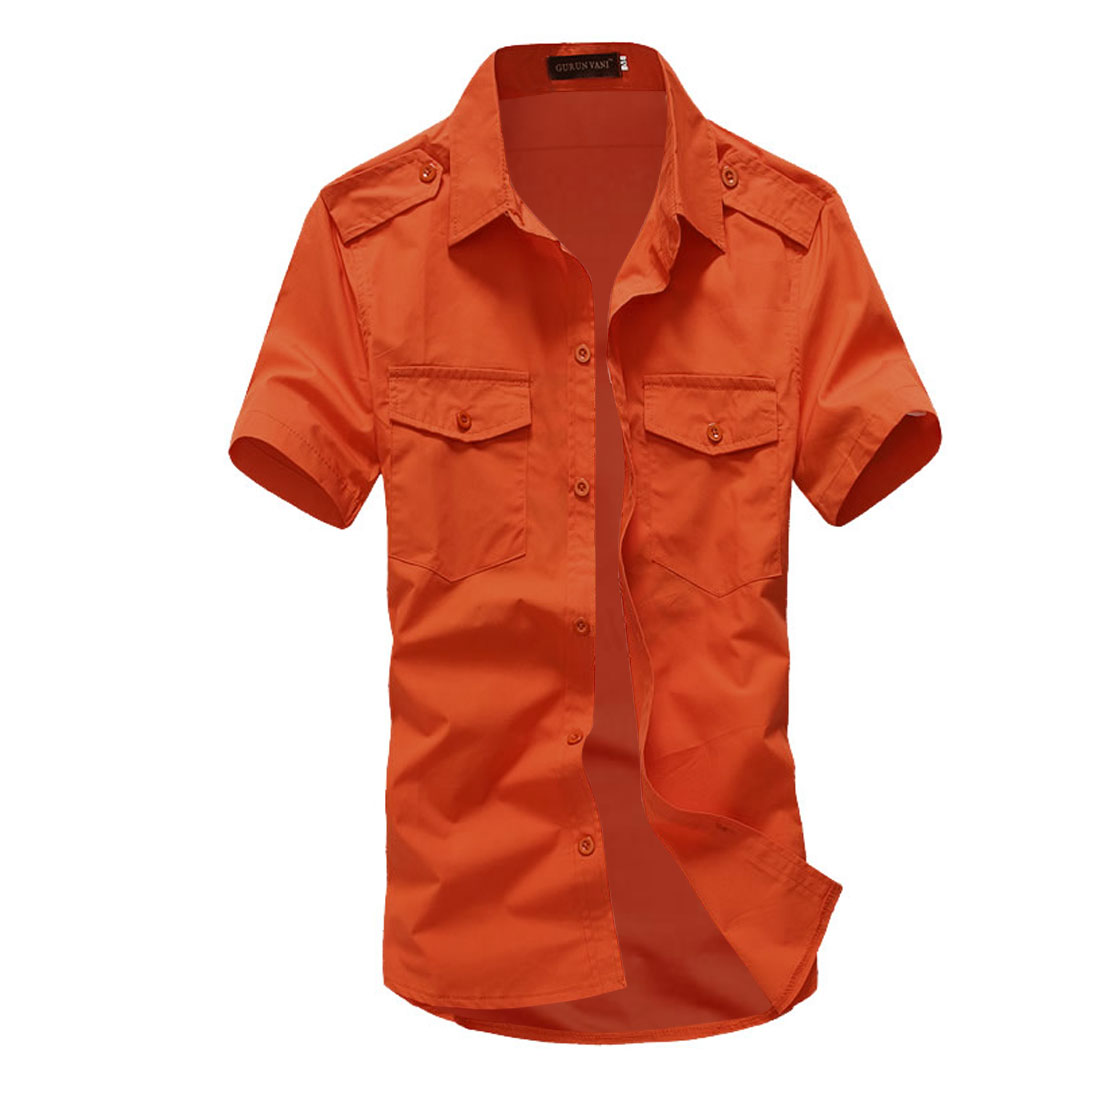 Man Solid Color Short Sleeves Point Collar Shirt Orange-red L